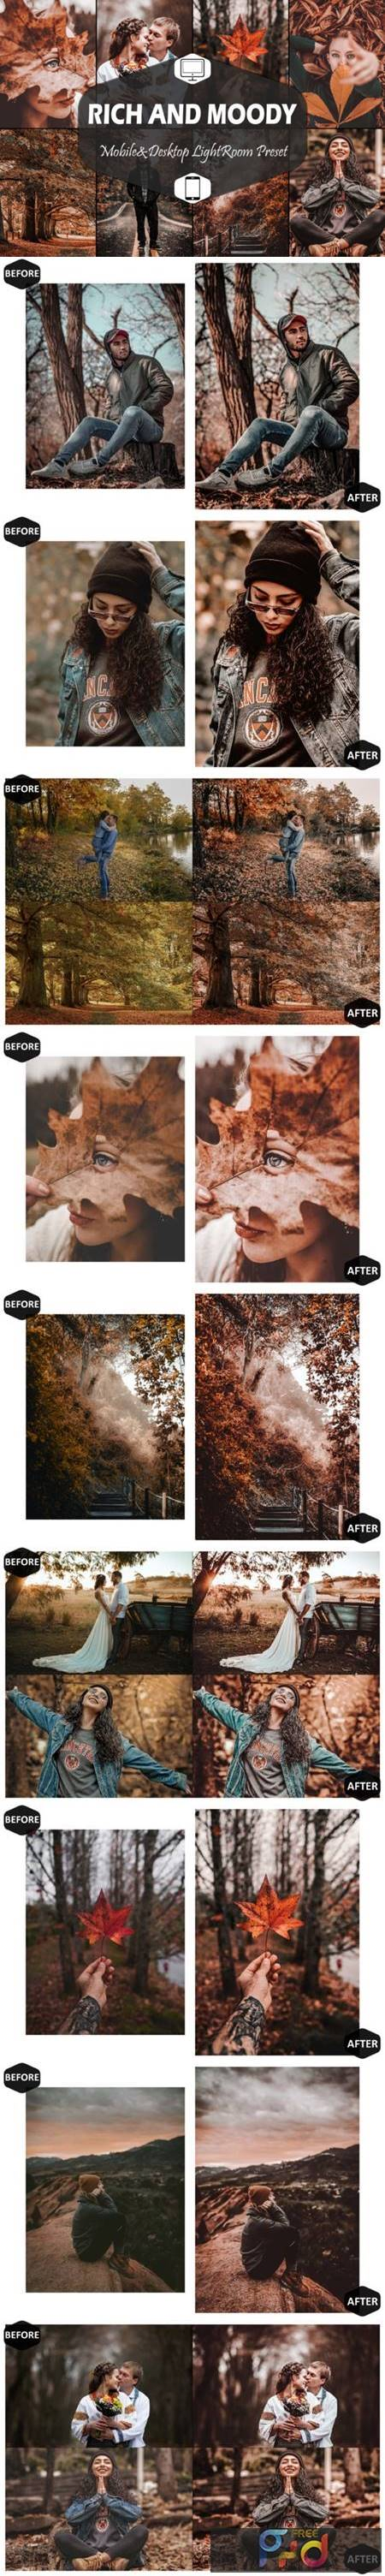 10 Rich and Moody Lightroom Presets 5916286 1